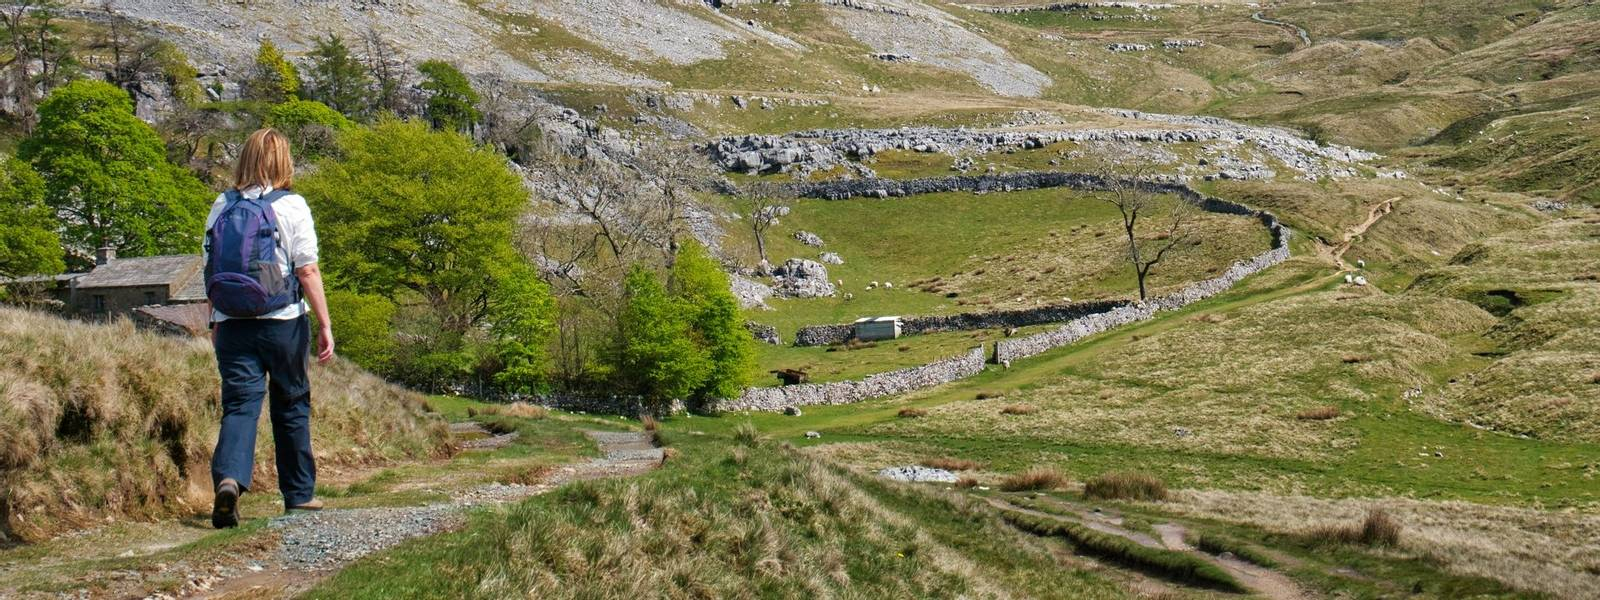 A single walker on the path by Crina Bottom, heading for Ingleborough, in the background, in the Yorkshire Dales, UK